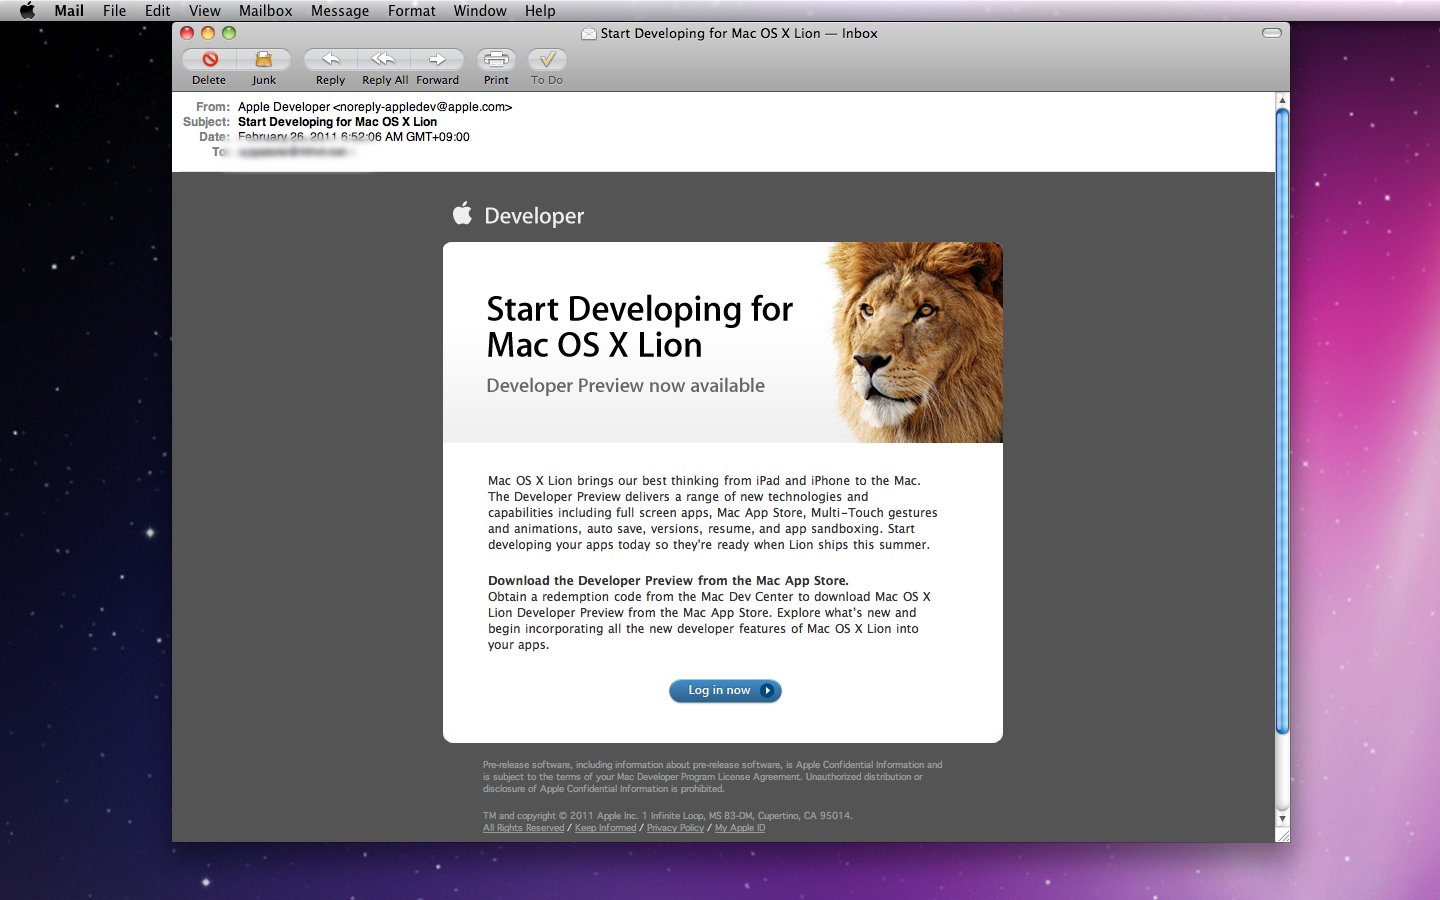 Mac OS X Lion Developer Preview